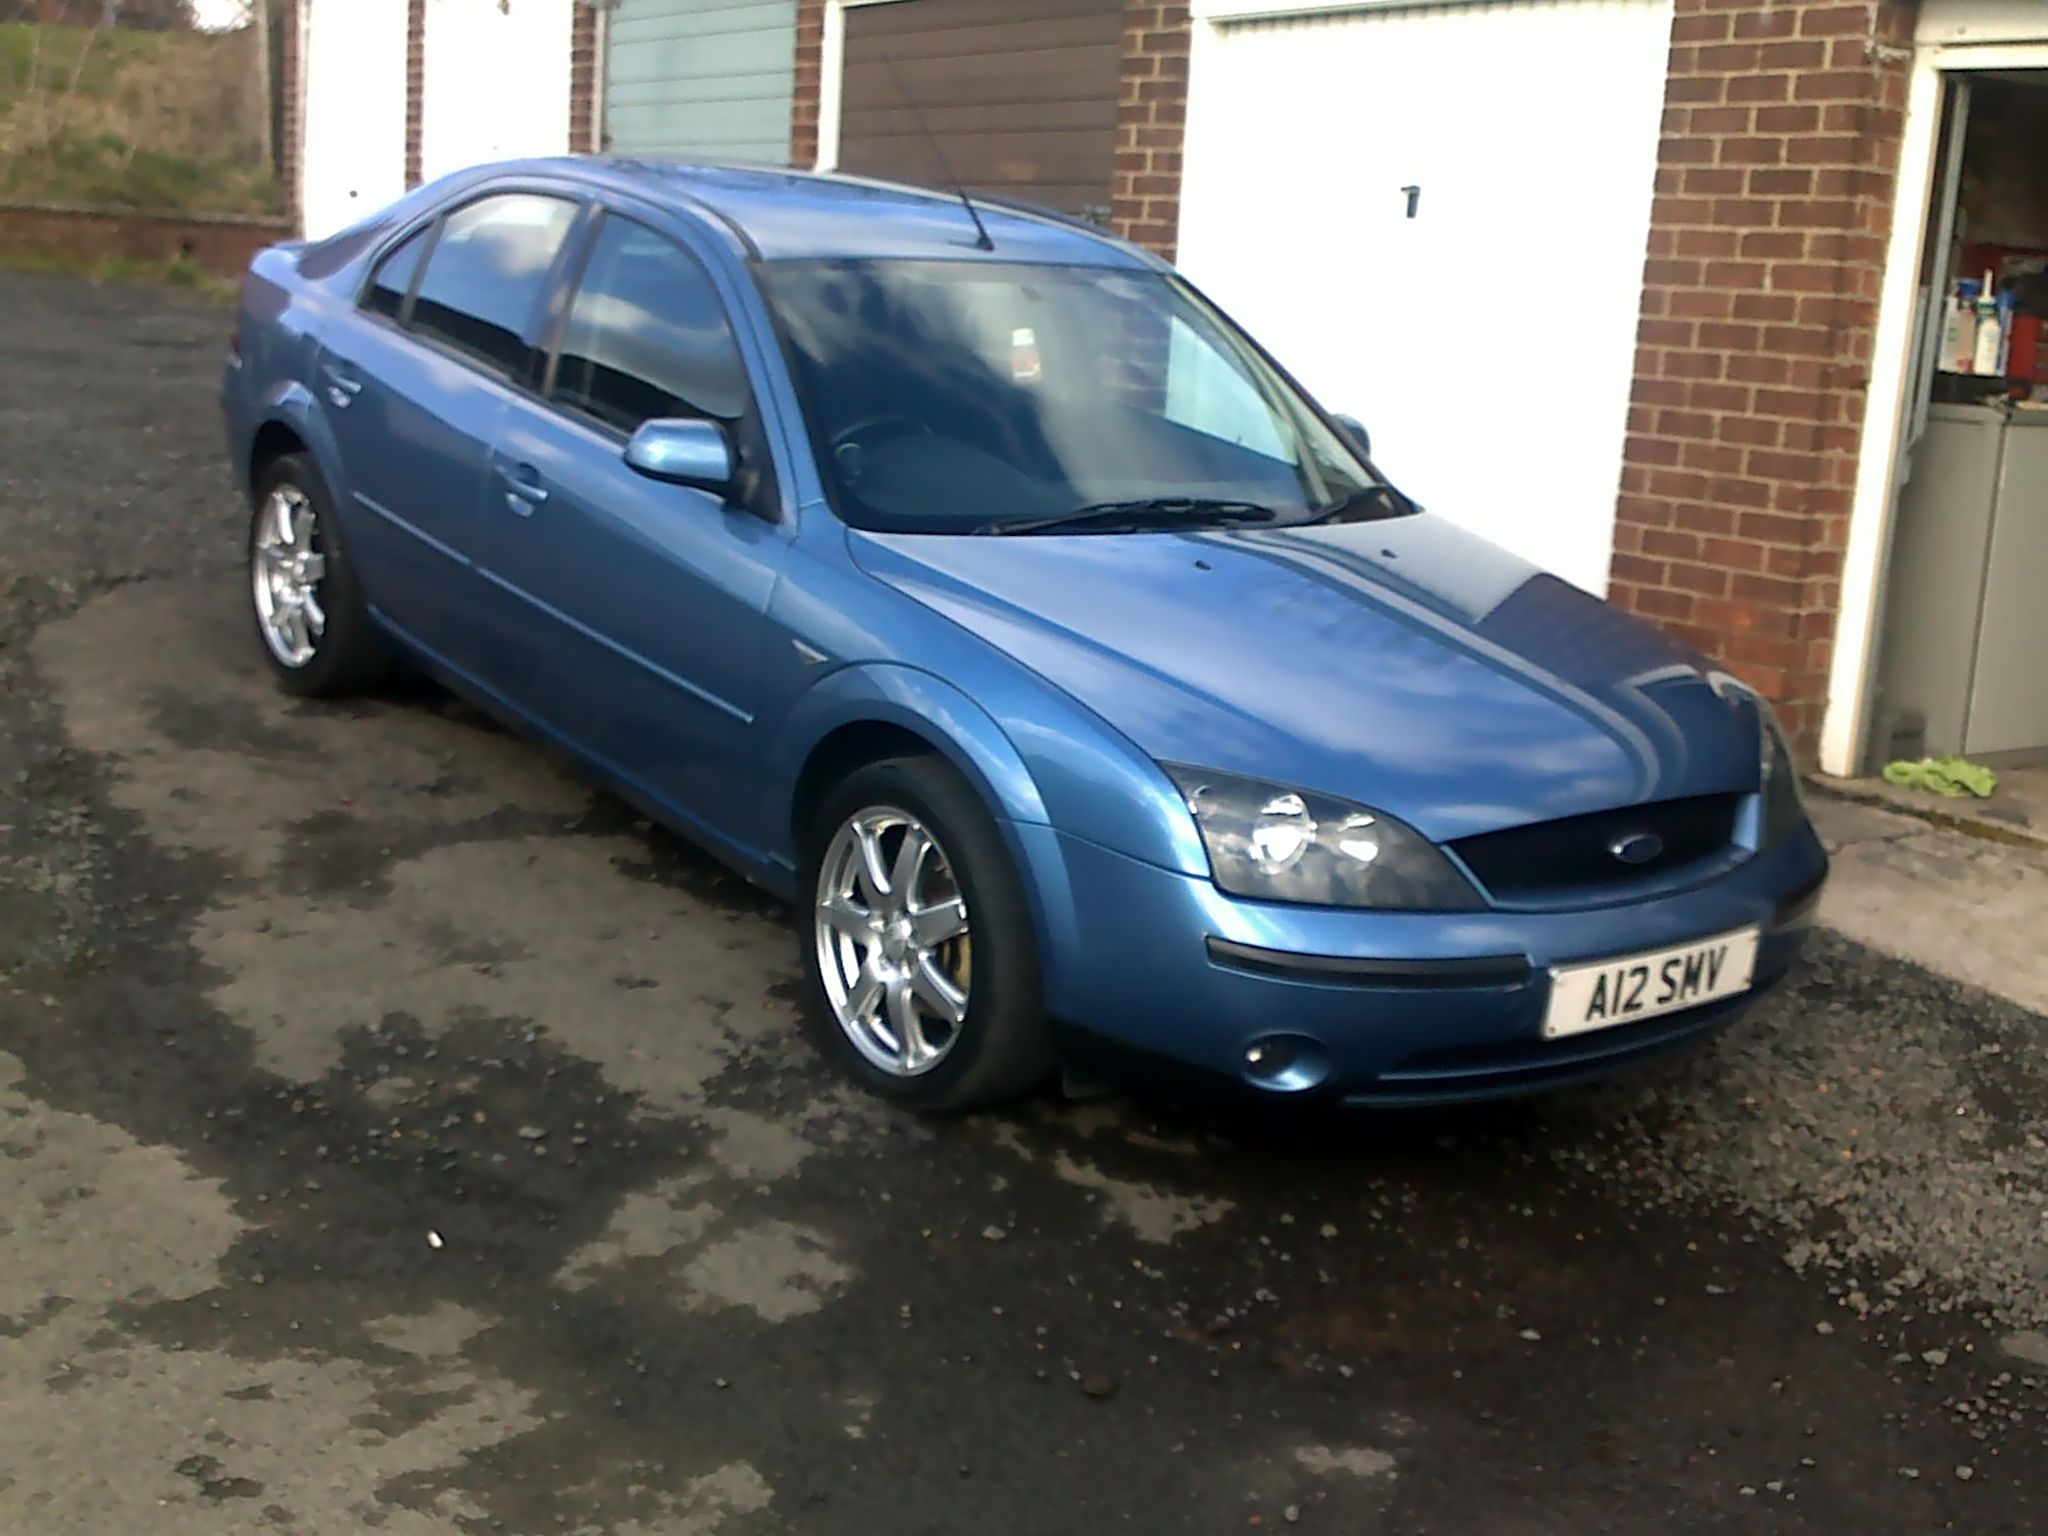 Audi 0 60 >> stevietiger 2002 Ford Mondeo Specs, Photos, Modification ...